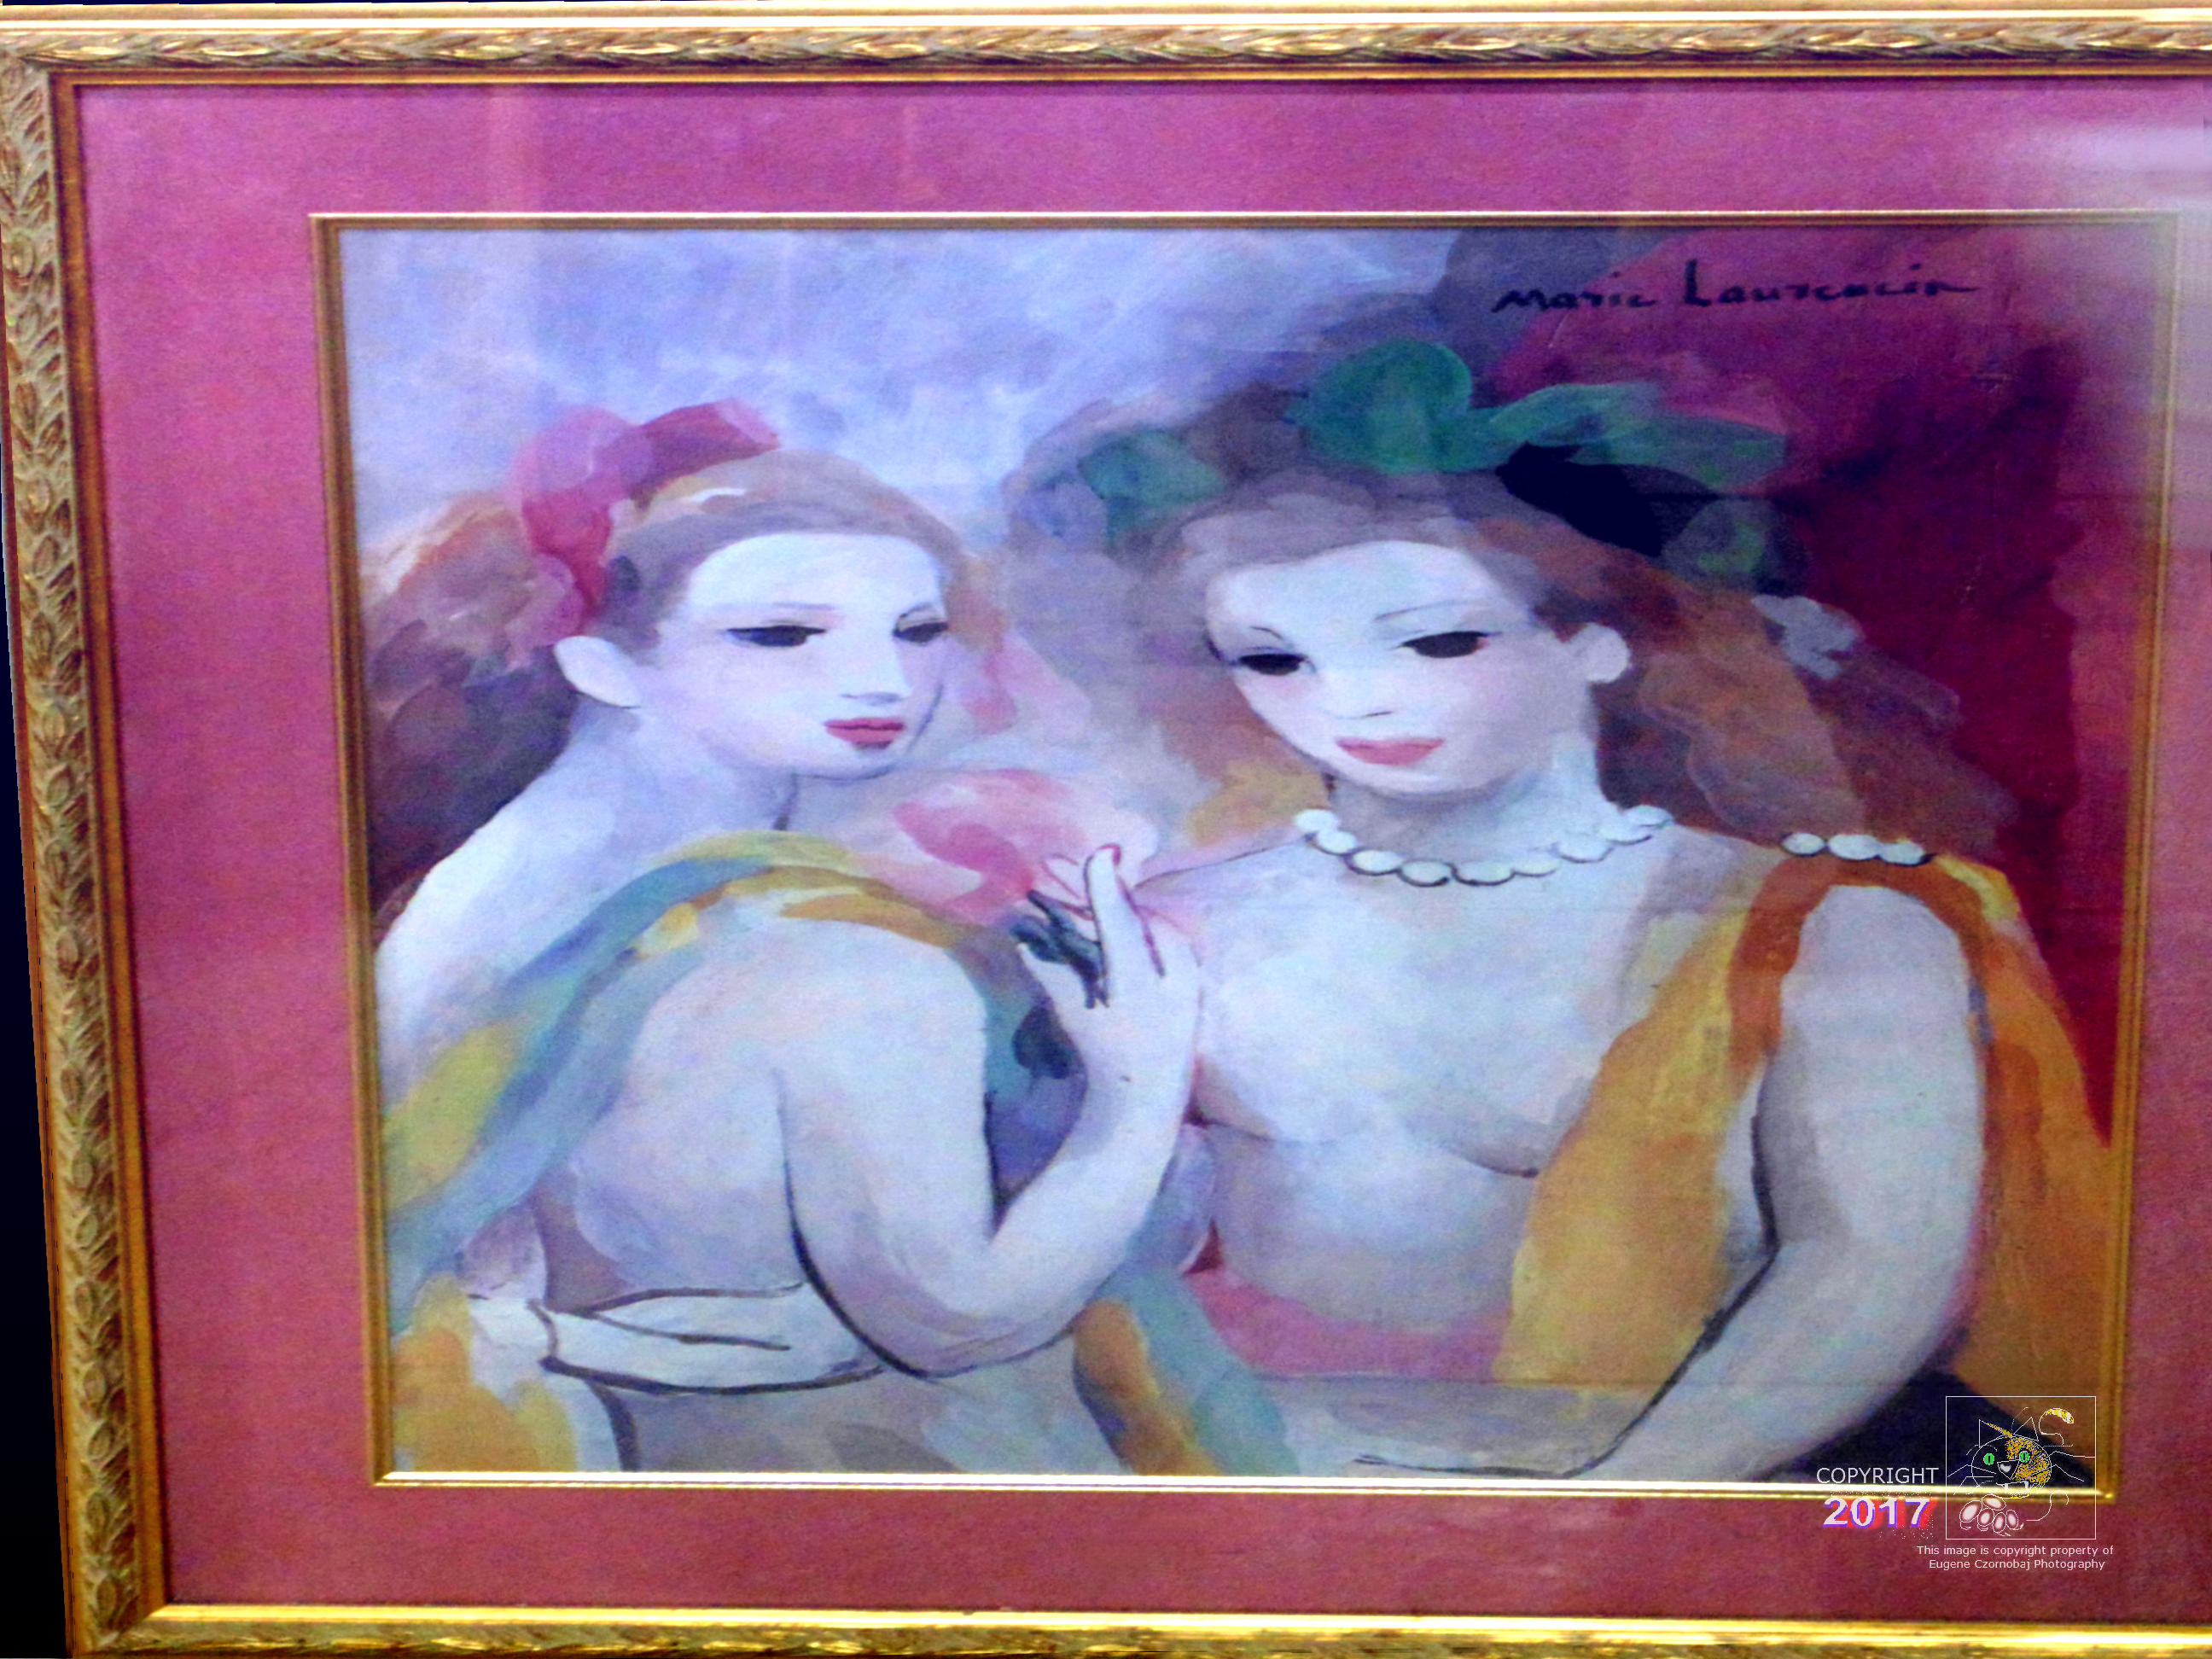 Pink ladies in gold frame twin sisters portrait is composed of pink variants and other colors.